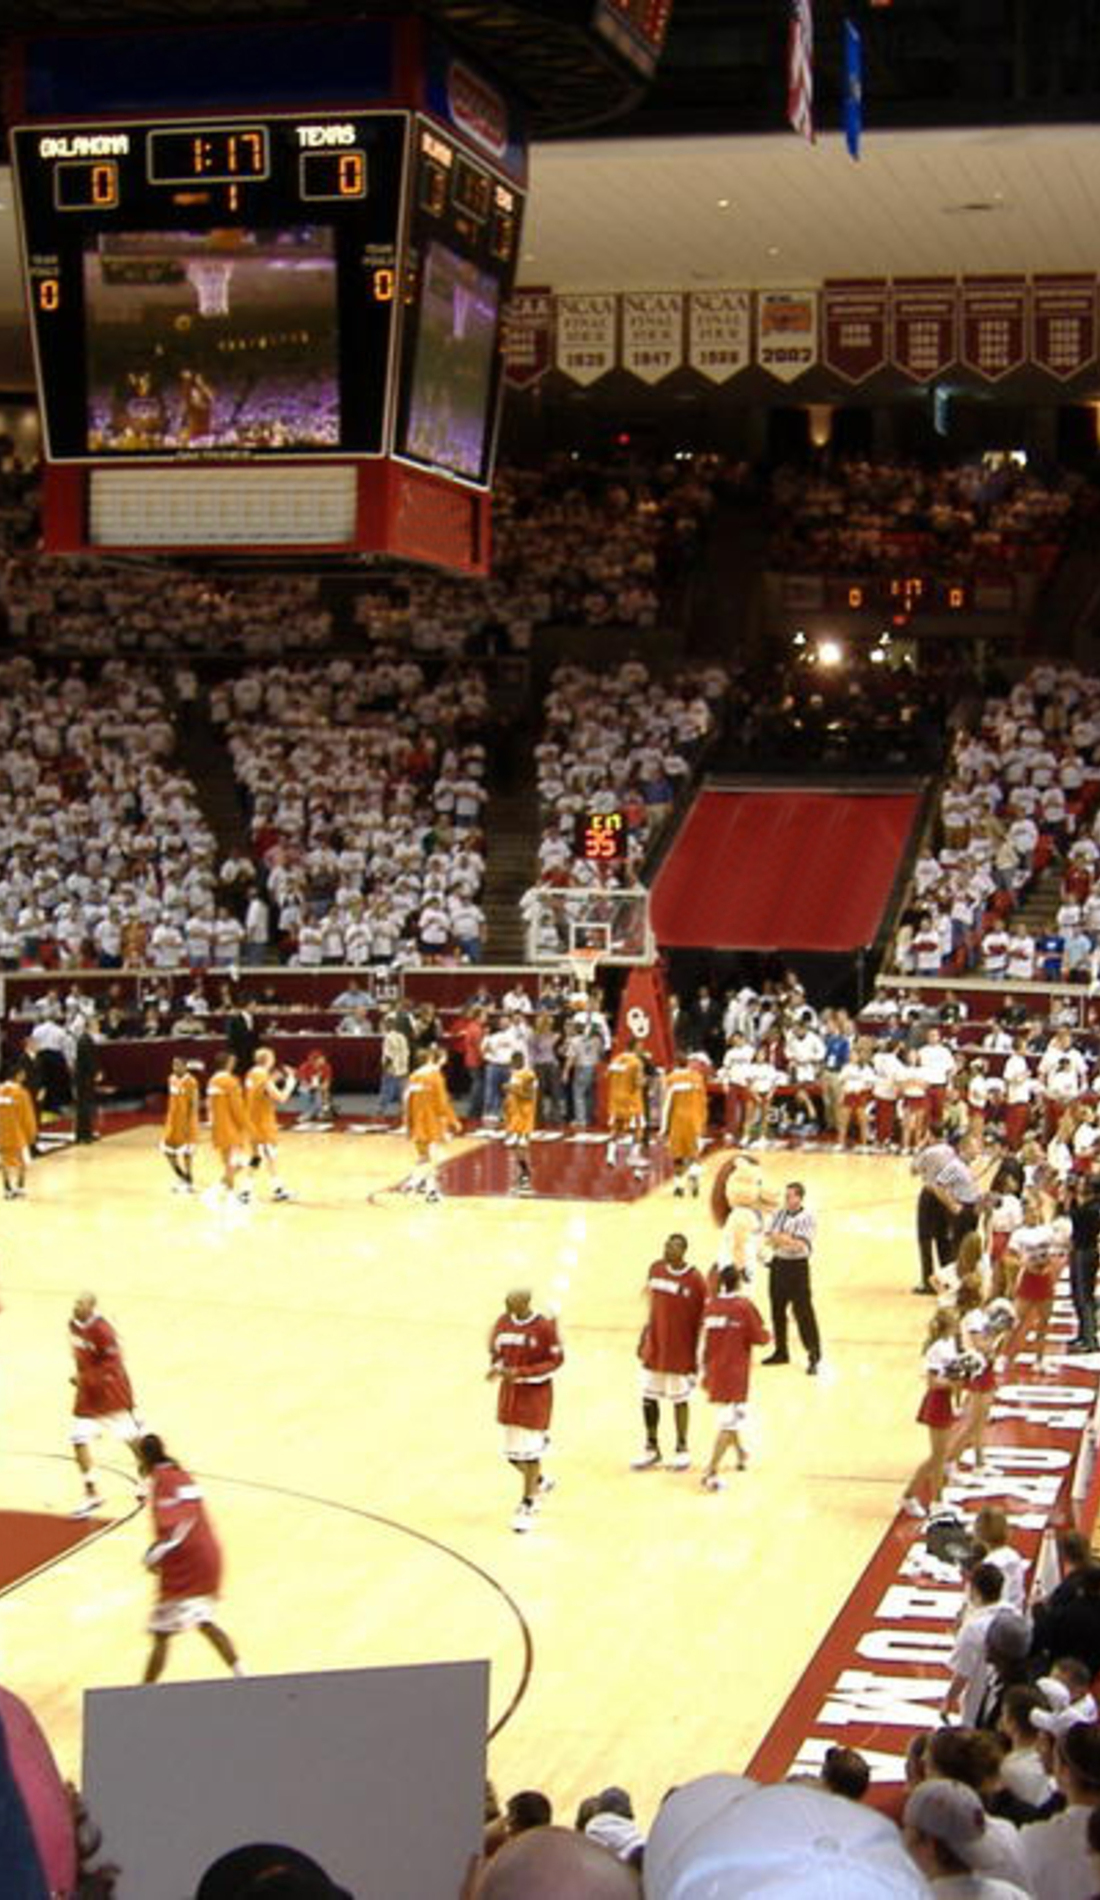 A Oklahoma Sooners Basketball live event